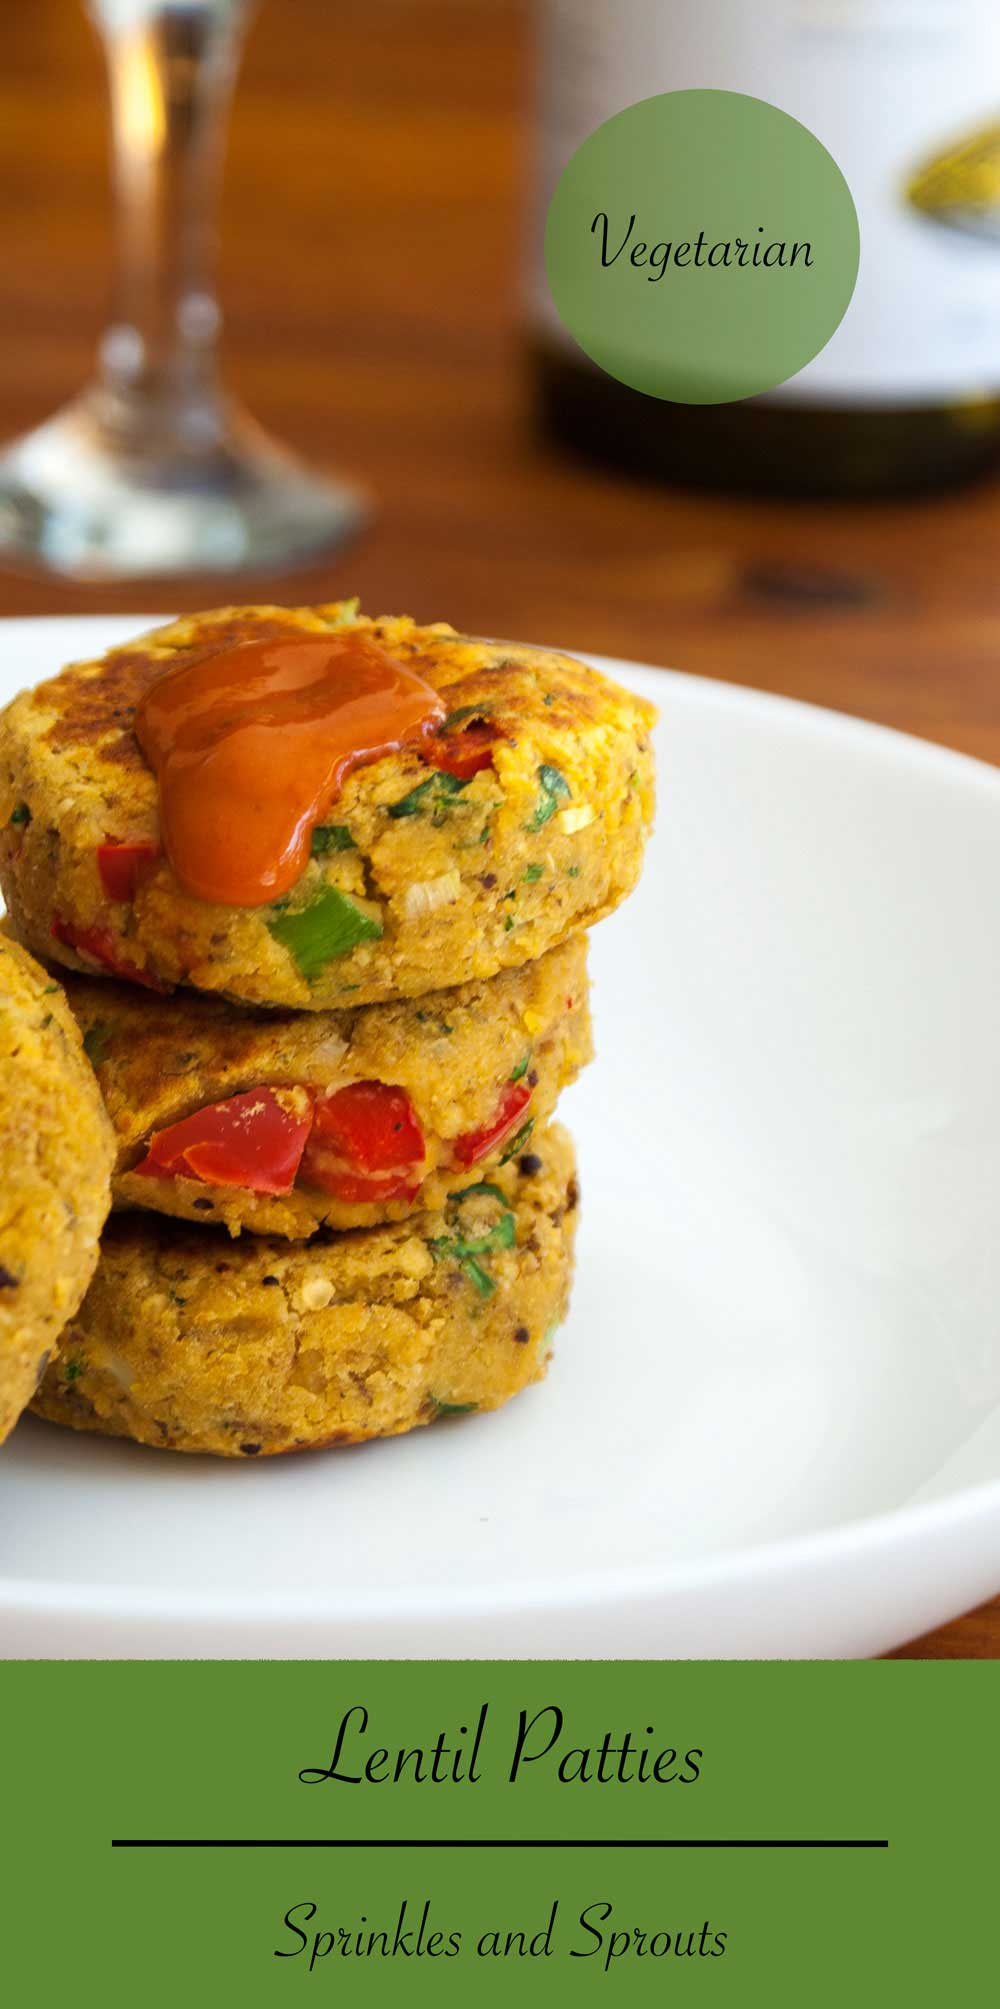 Lentil Patties. A great vegetarian dish, that is delicious eaten warm or cold. Great for lunch boxes and as a canapé or appetiser.